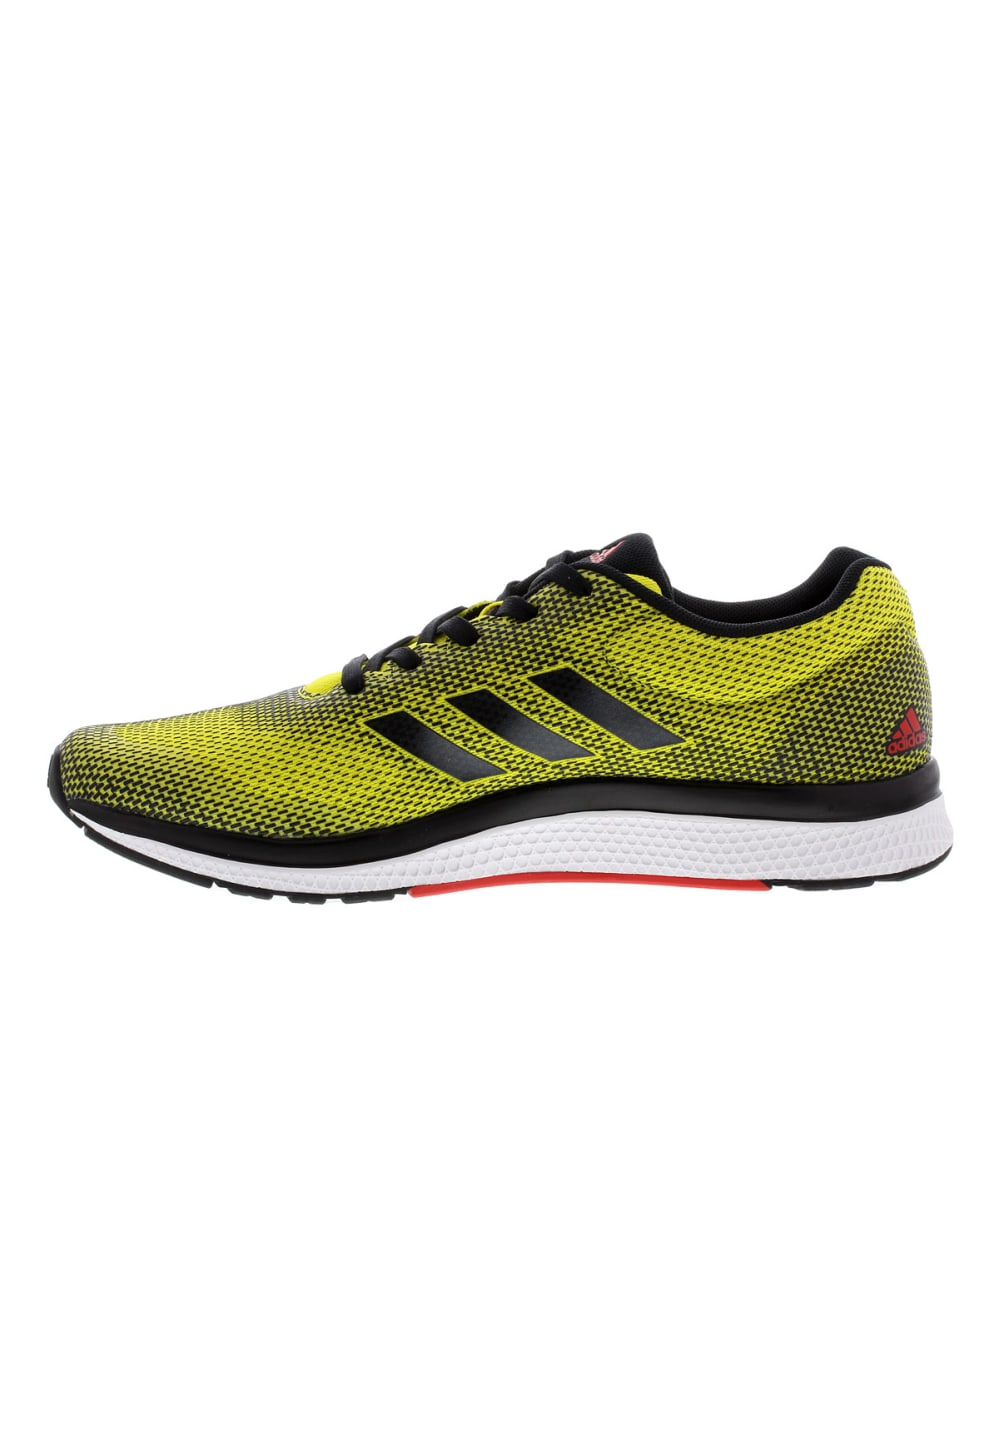 Adidas Pour Chaussures Aramis Mana Bounce 2 Running Homme Gris OZikXPu